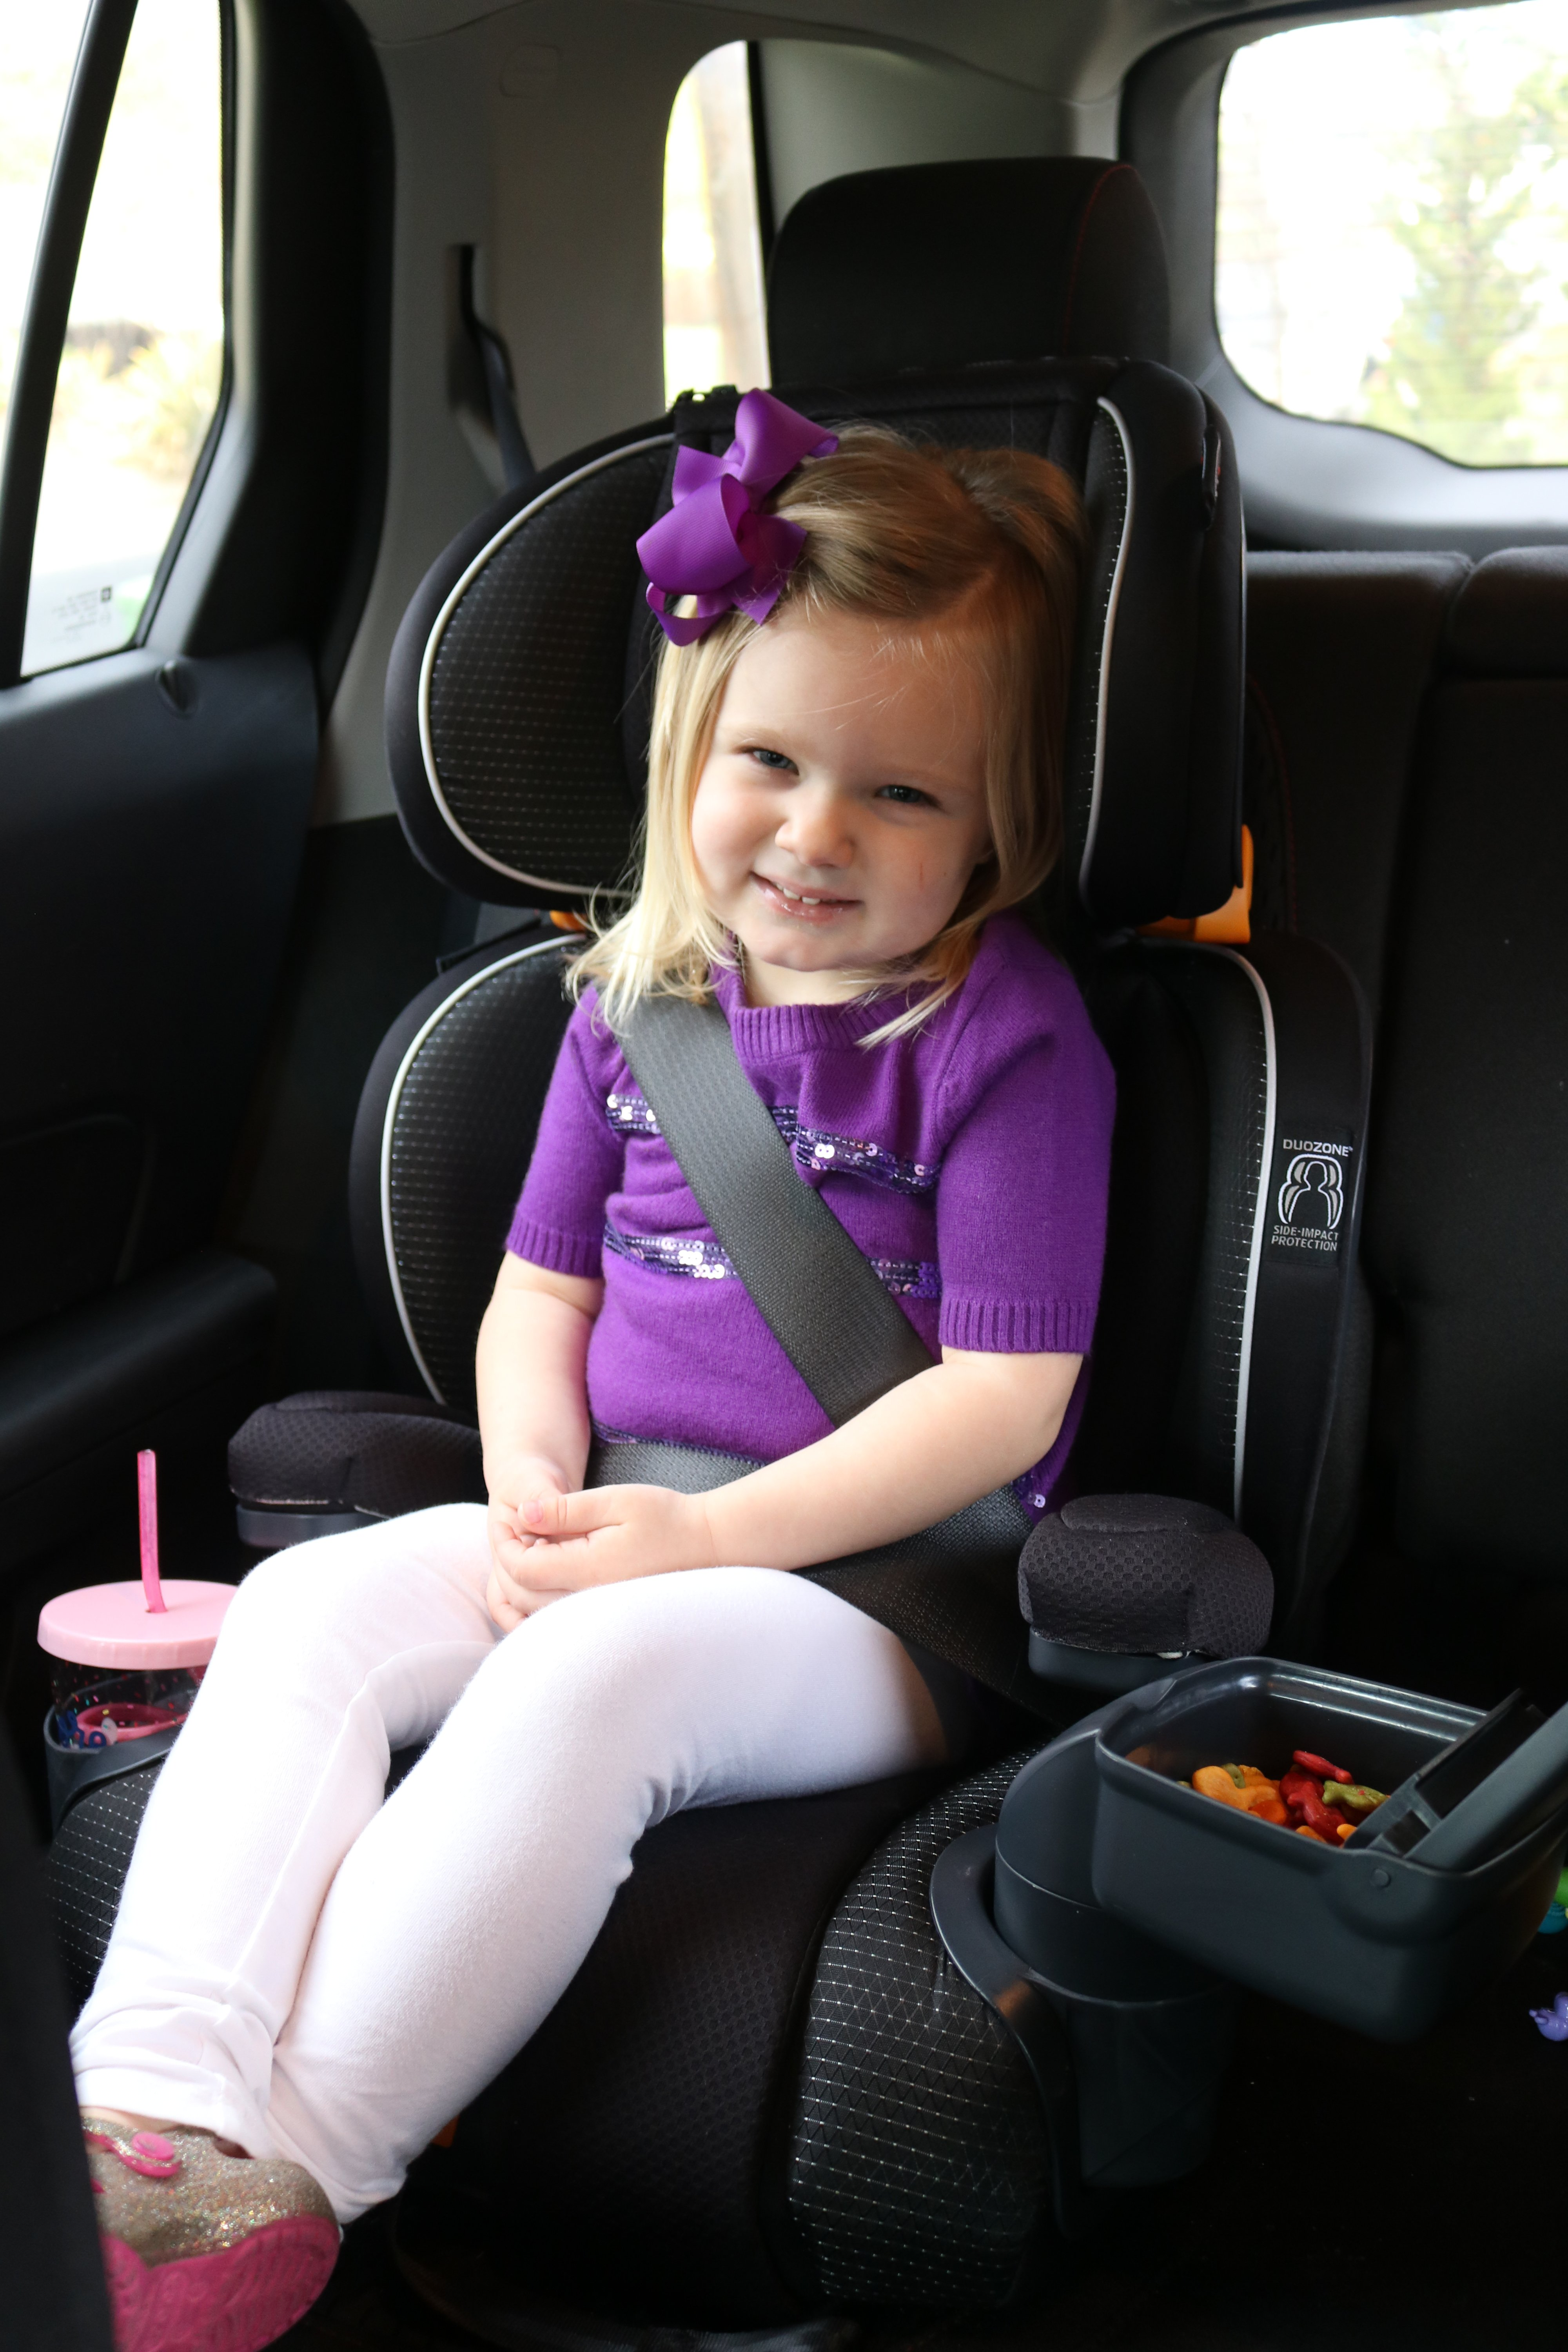 Chicco Keyfit | car seat tips for toddlers | kids and booster seats | how to transition to booster